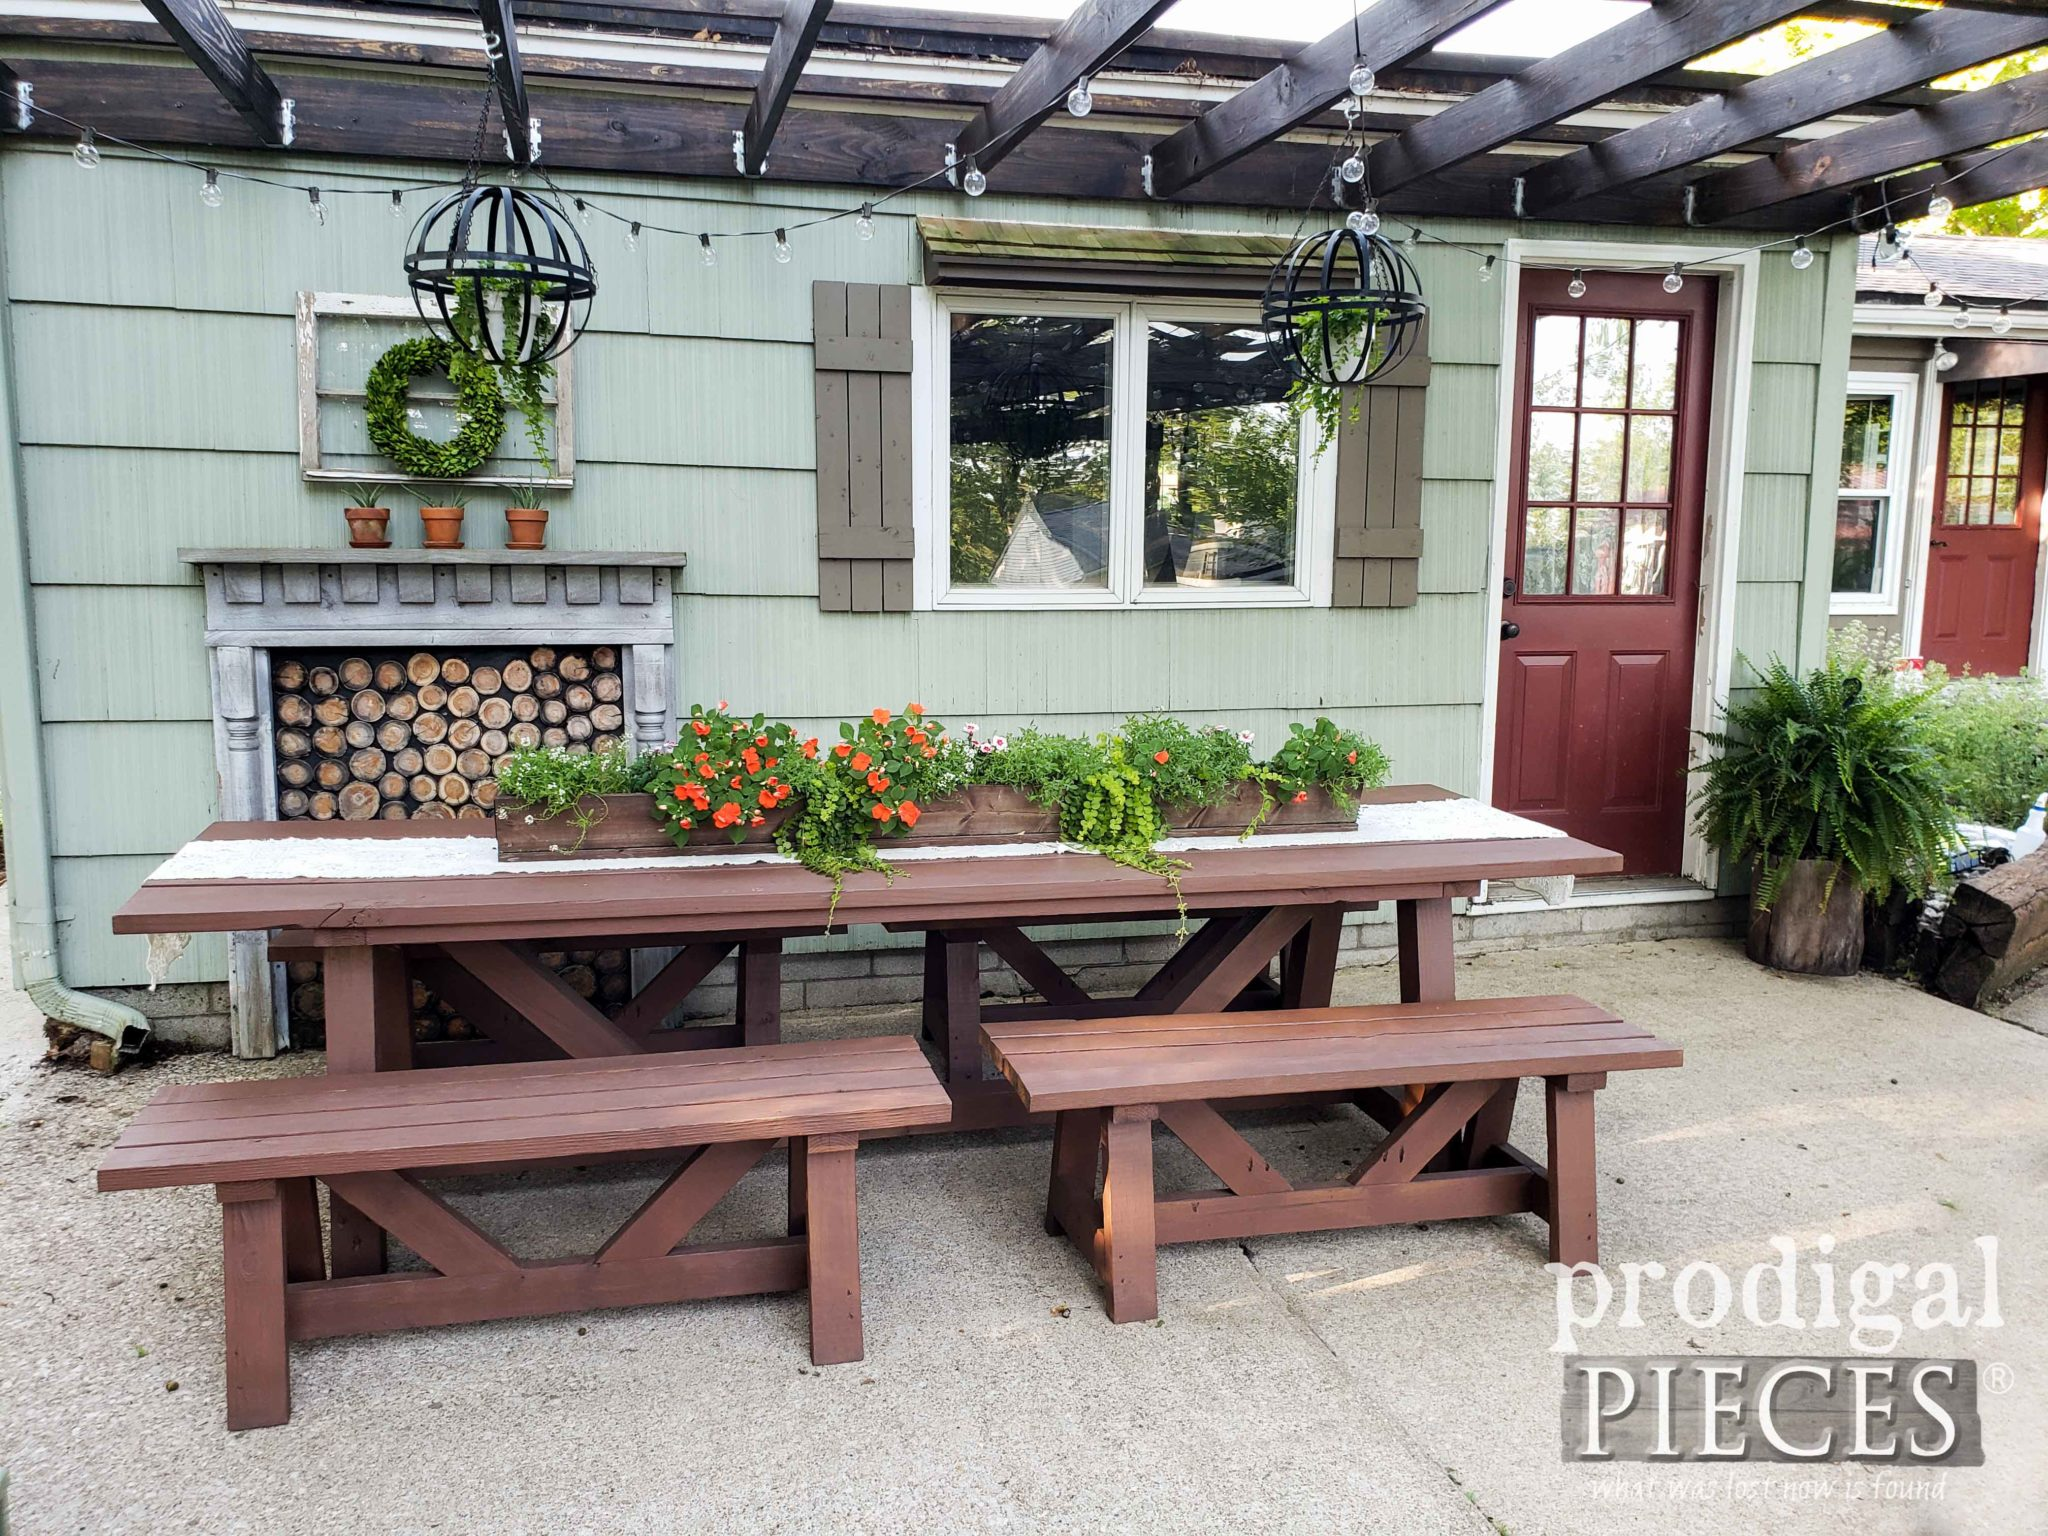 DIY Patio Furniture Update with the HomeRight Super Finish Max Sprayer by Larissa of Prodigal Pieces | prodigalpieces.com #prodigalpieces #diy #home #homedecor #patio #outdoor